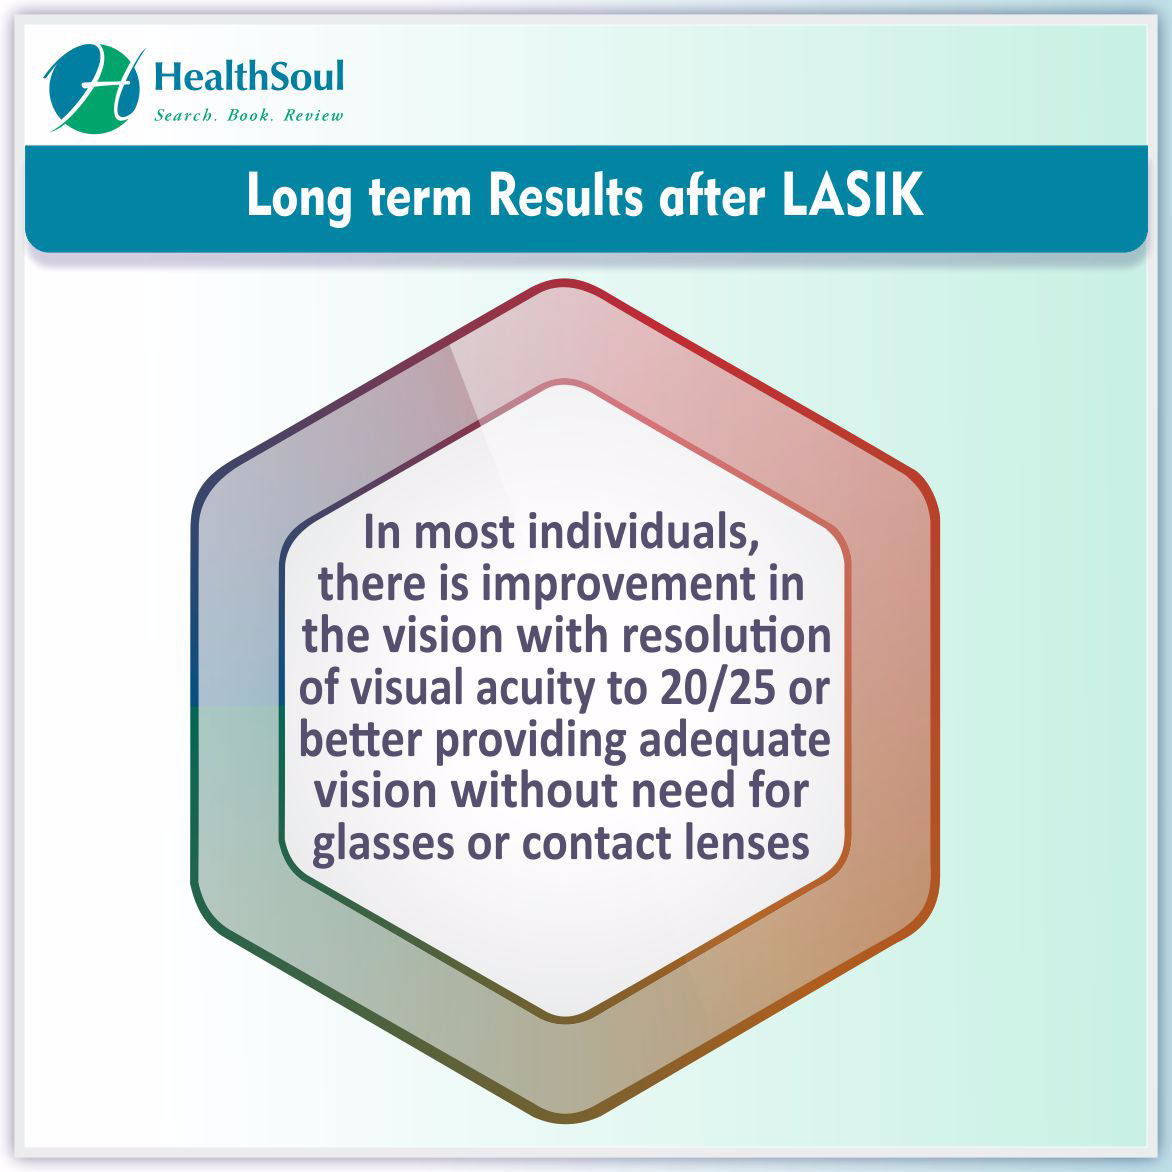 Long Term Results after LASIK | HealthSoul